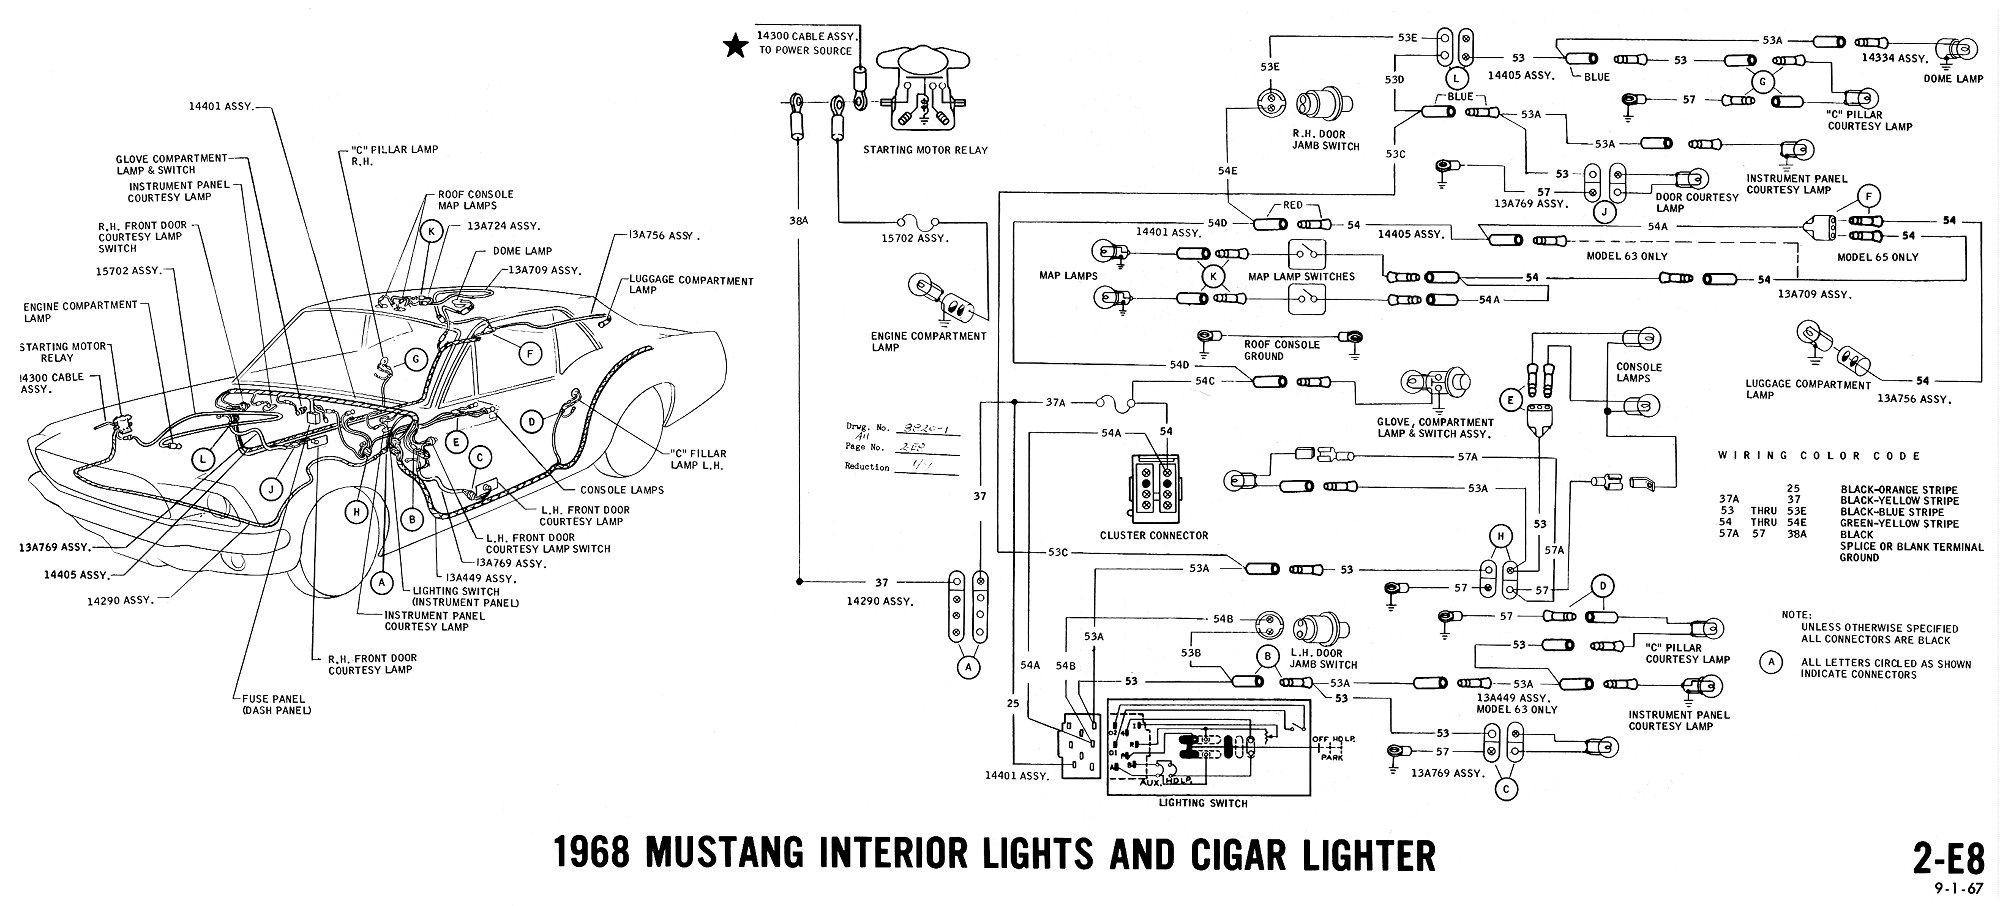 1969 cougar lighting diagram wiring diagram rh blaknwyt co 1987 Mustang Wiring Diagram 1978 ford mustang wiring diagram